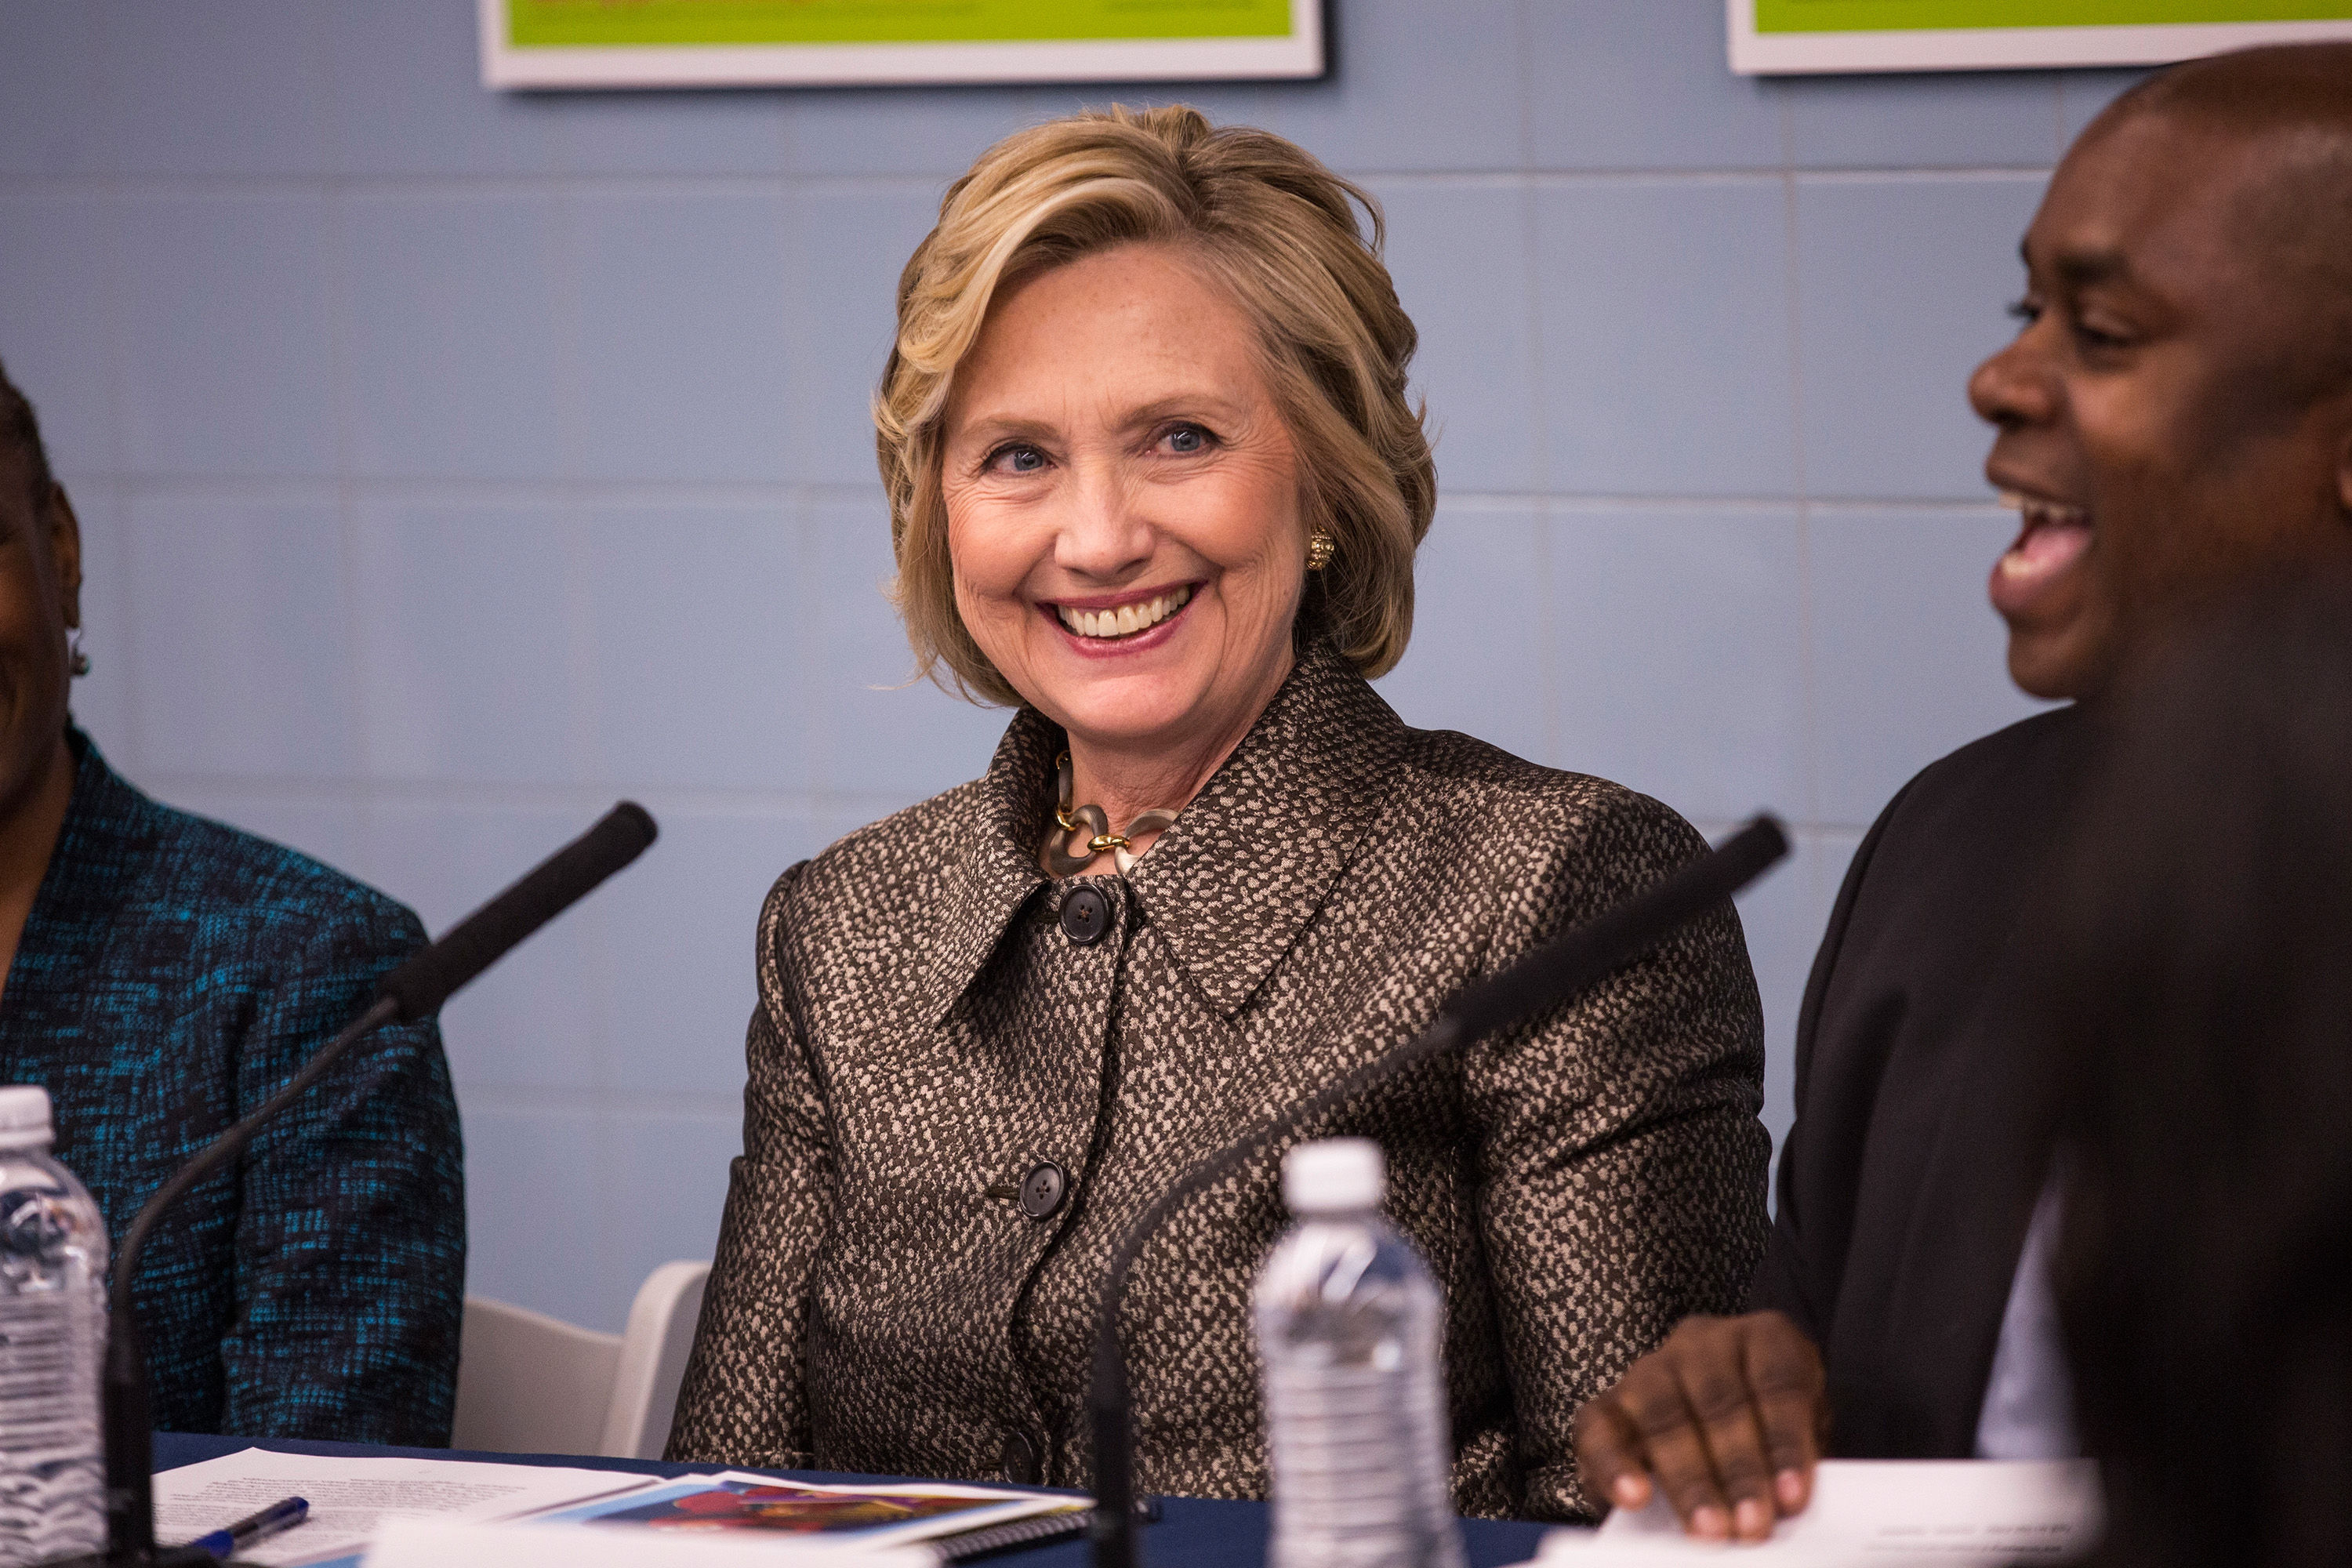 Hillary Clinton on April 1, 2015 in New York City.